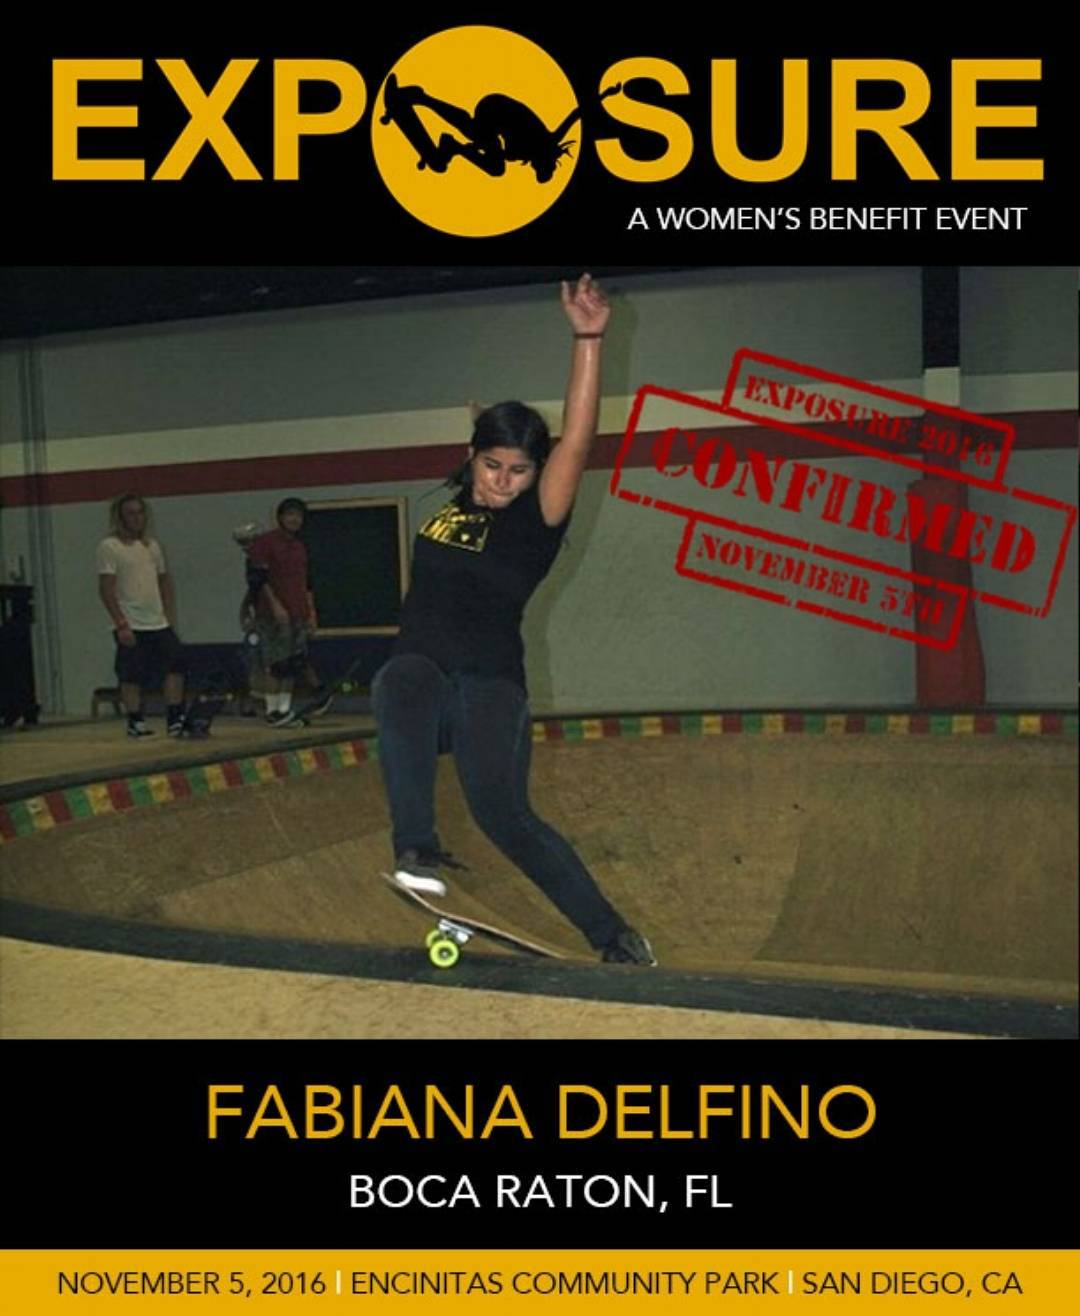 Yes!! @fabiana_delfino will be rockin the Pro Bowl and Street Competition at EXPOSURE!!